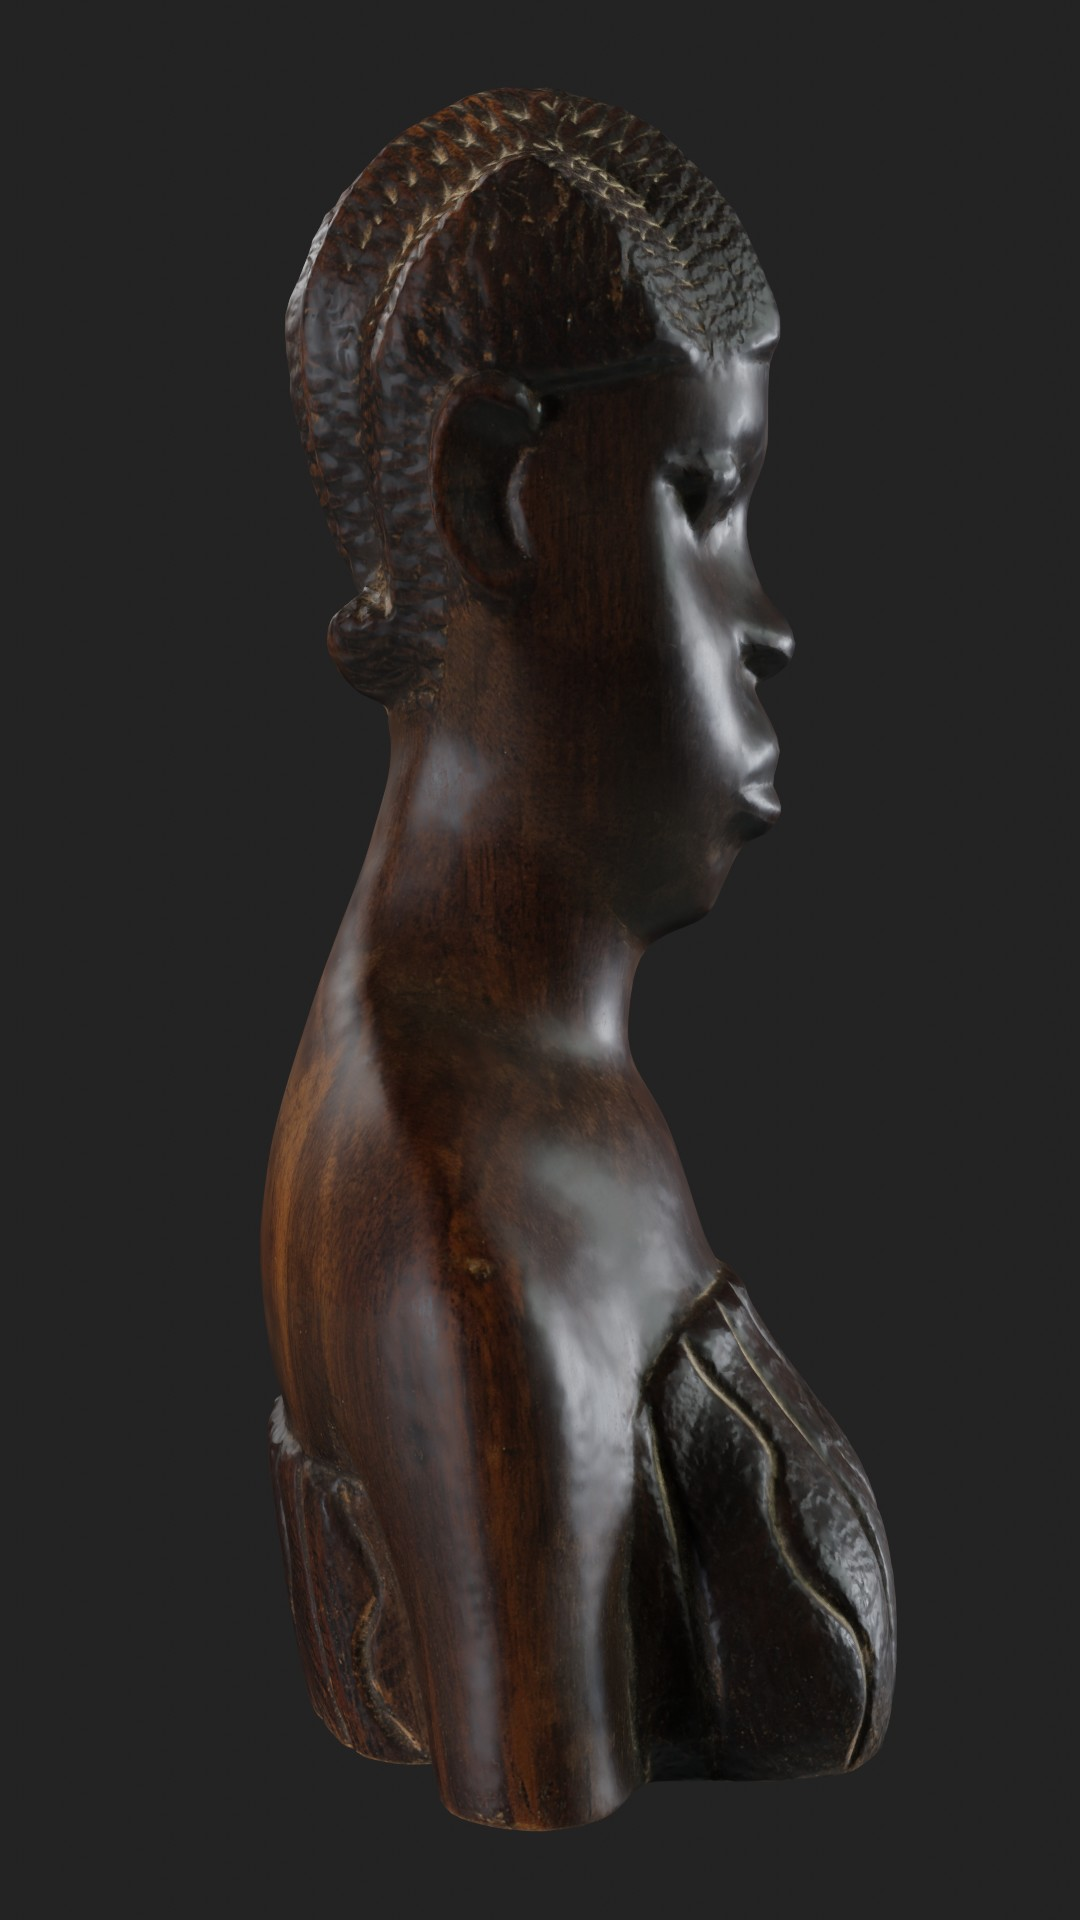 African wooden figurine preview image 3